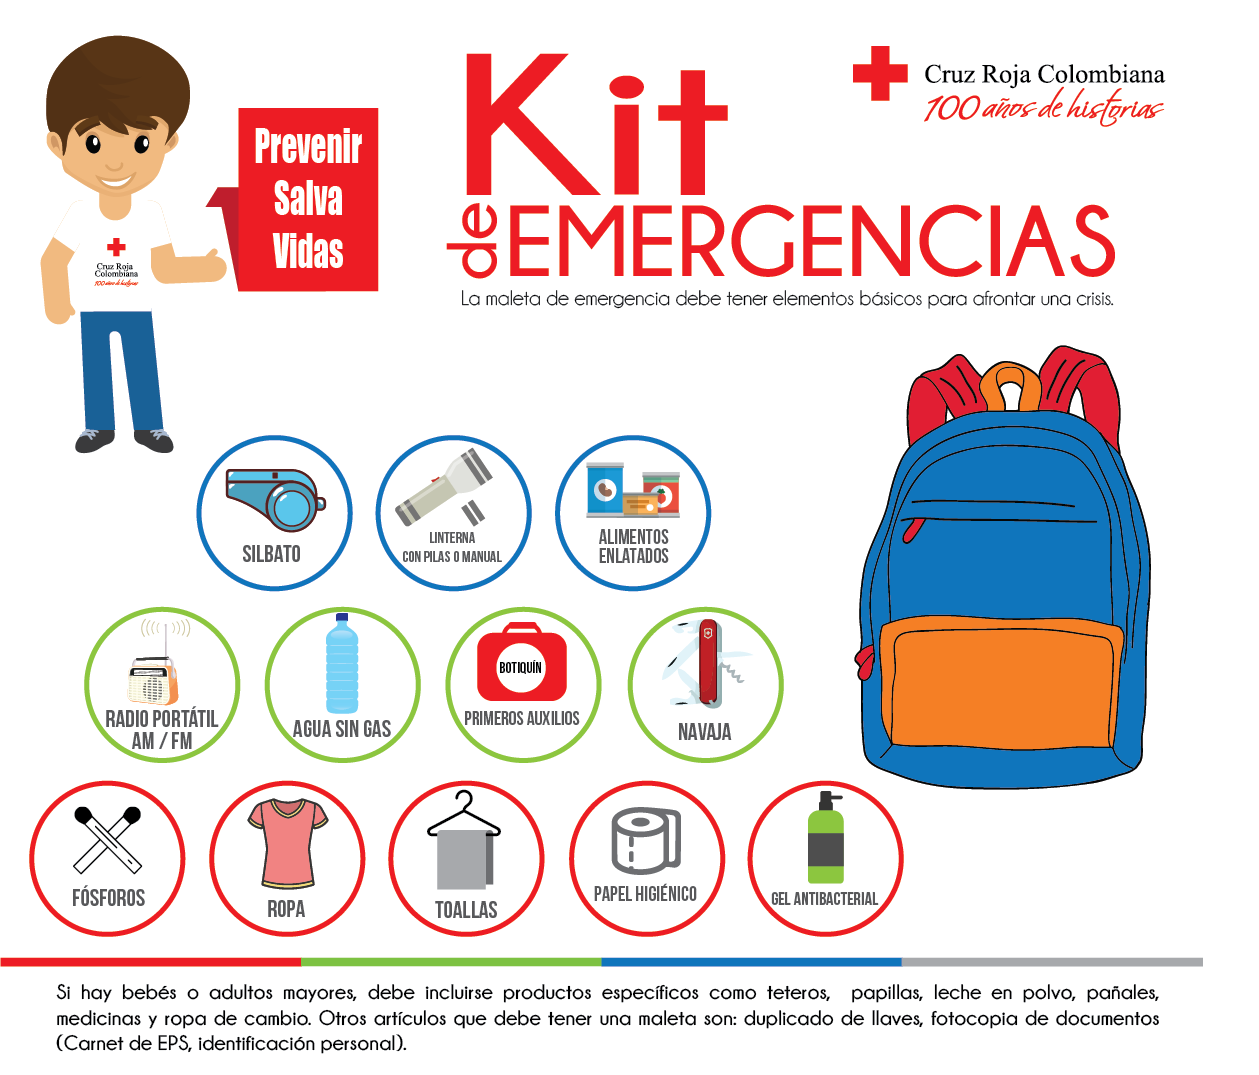 KIT EMERGENCIAS CRUZ ROJA ALERTA TEMPRANA